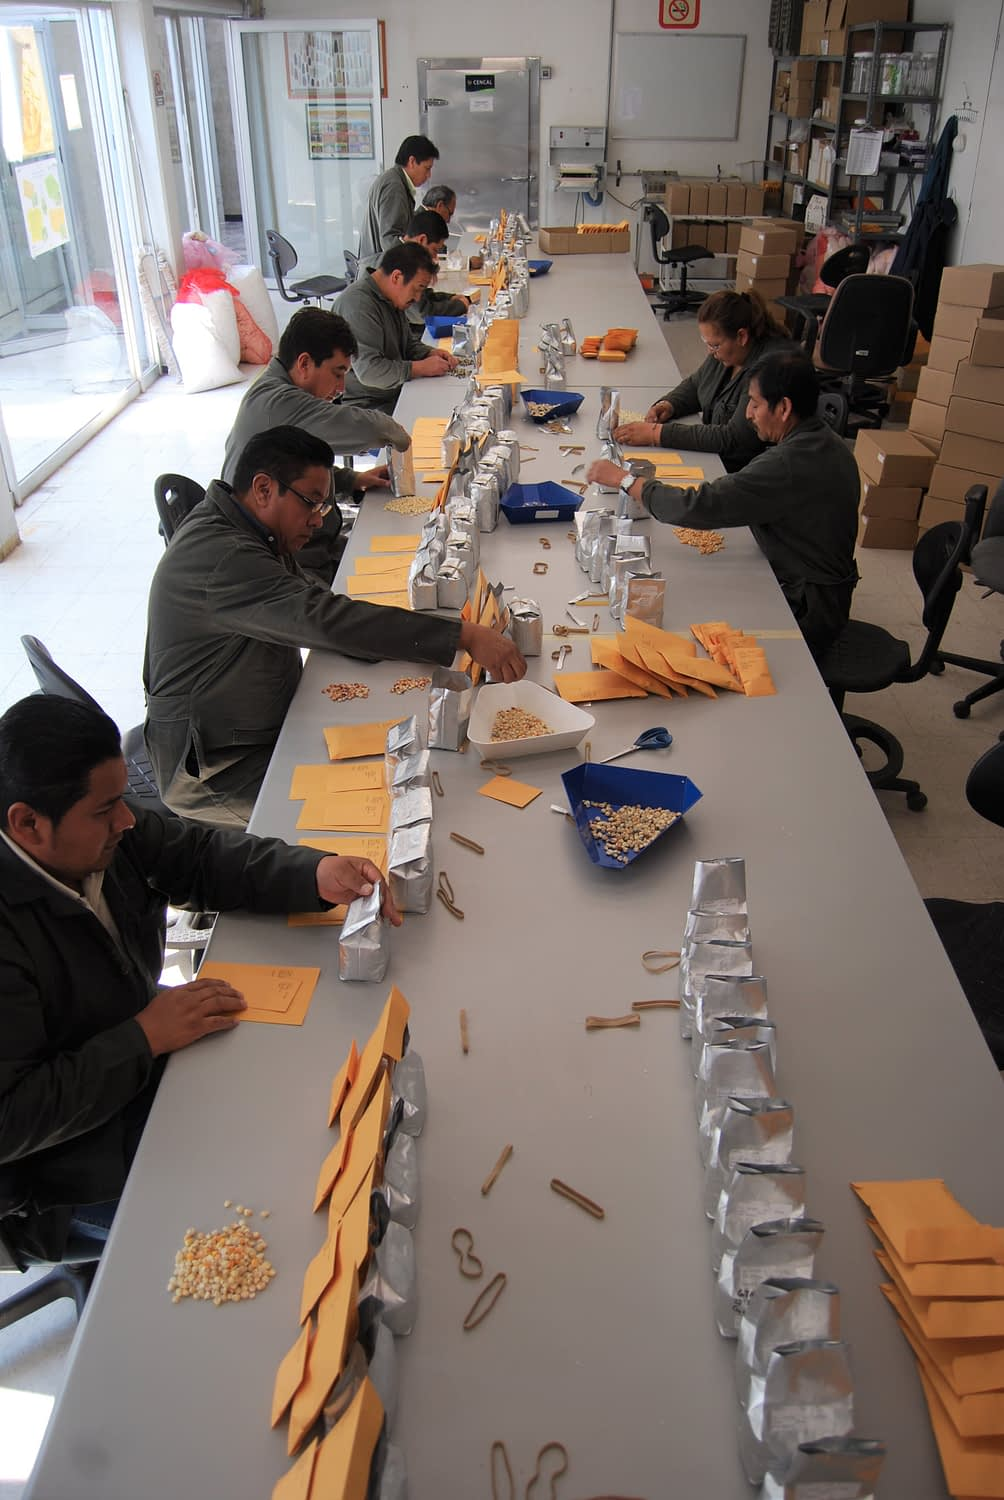 CIMMYT maize germplasm bank staff preparing the order for the repatriation of Guatemalan seed varieties. (Photo: CIMMYT)